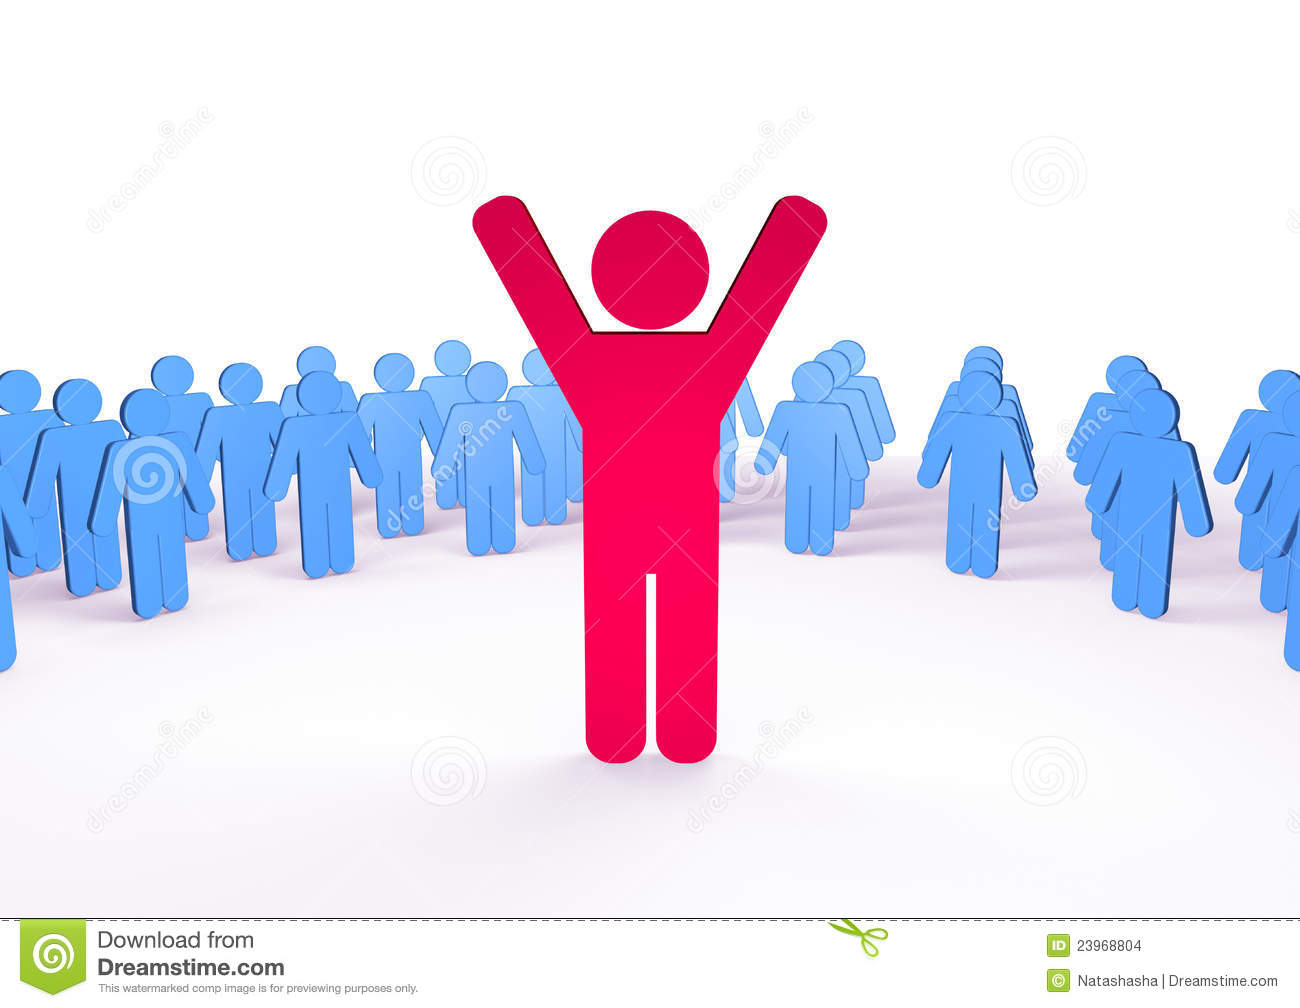 More similar stock images of success people icon